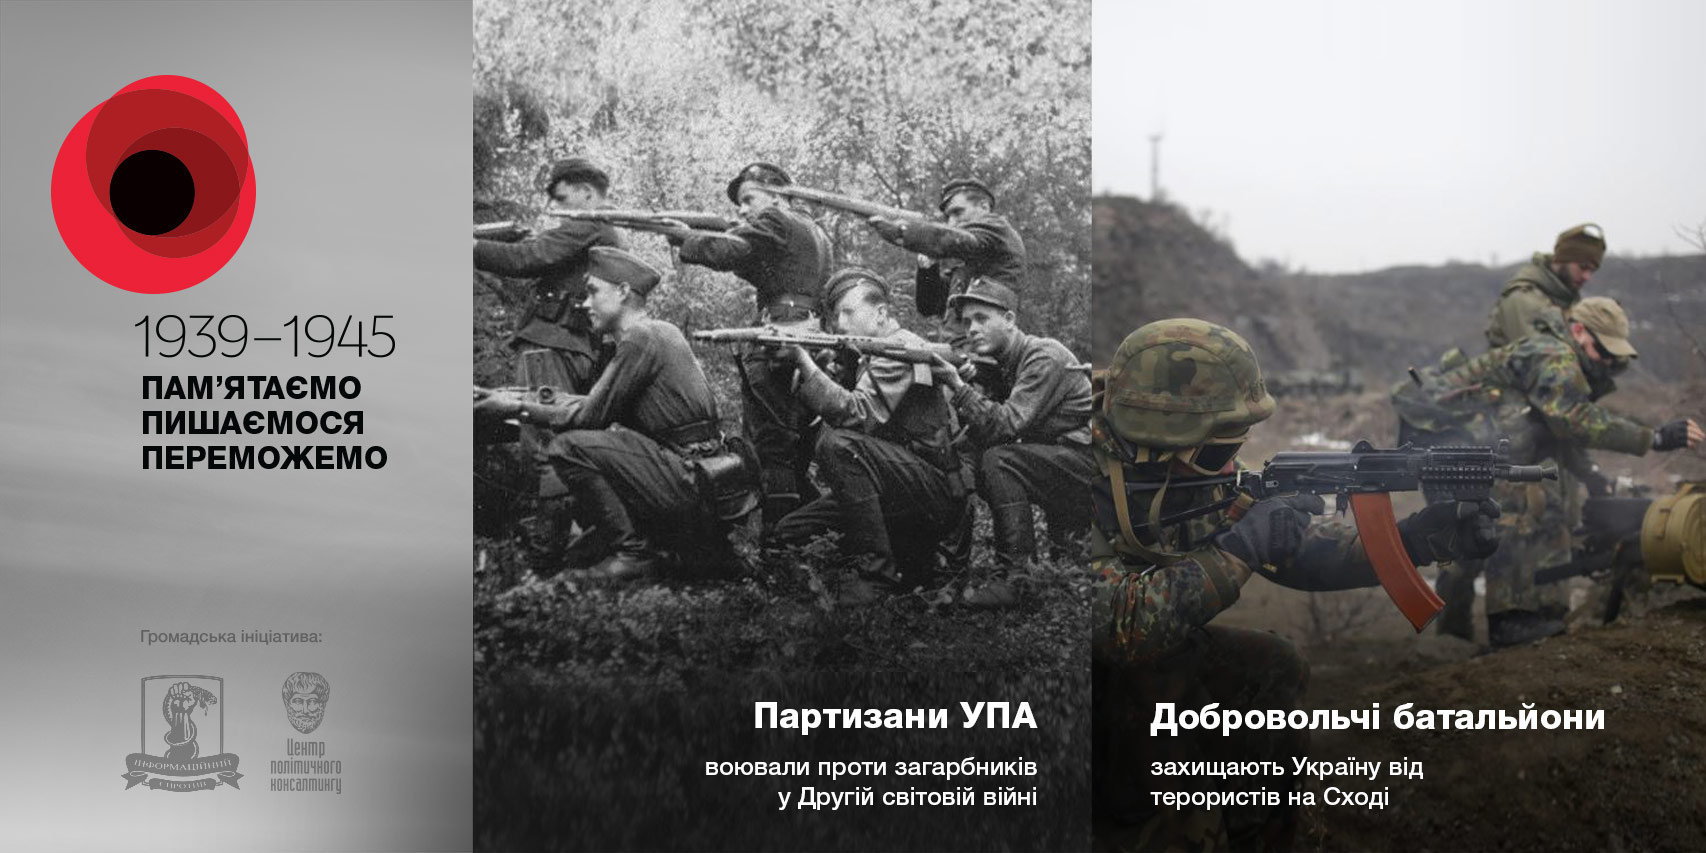 For the Homeland: Partisans from Ukrainian Insurgent Army:  Fought against the invaders during the Second World War. – Volunteer battalions: Protecting Ukraine from terrorists in the east of the country.